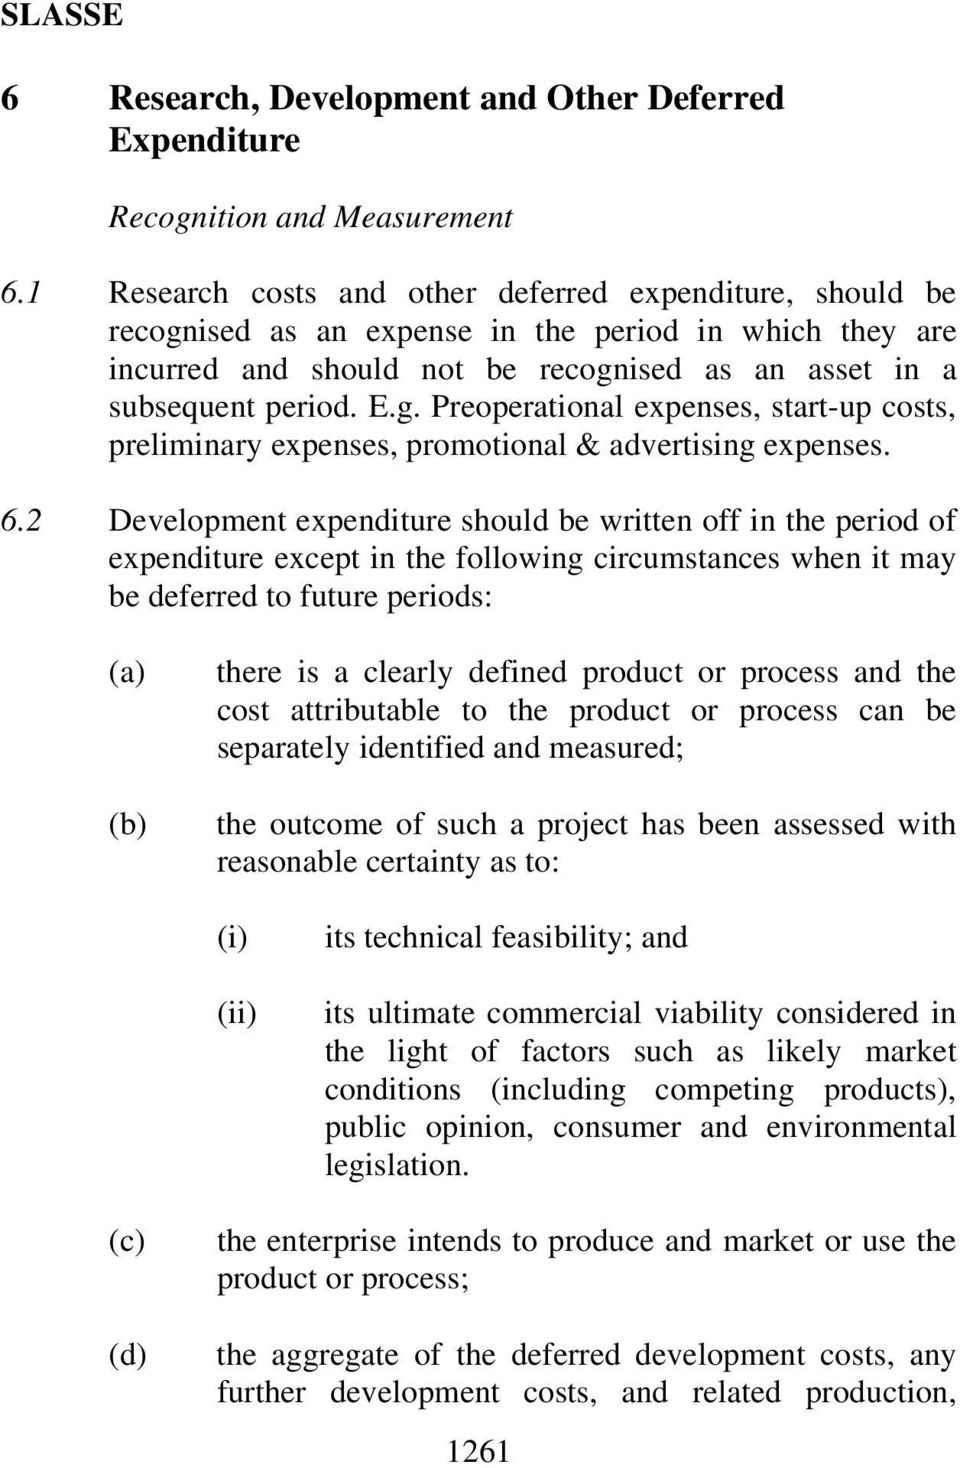 6.2 Development expenditure should be written off in the period of expenditure except in the following circumstances when it may be deferred to future periods: there is a clearly defined product or